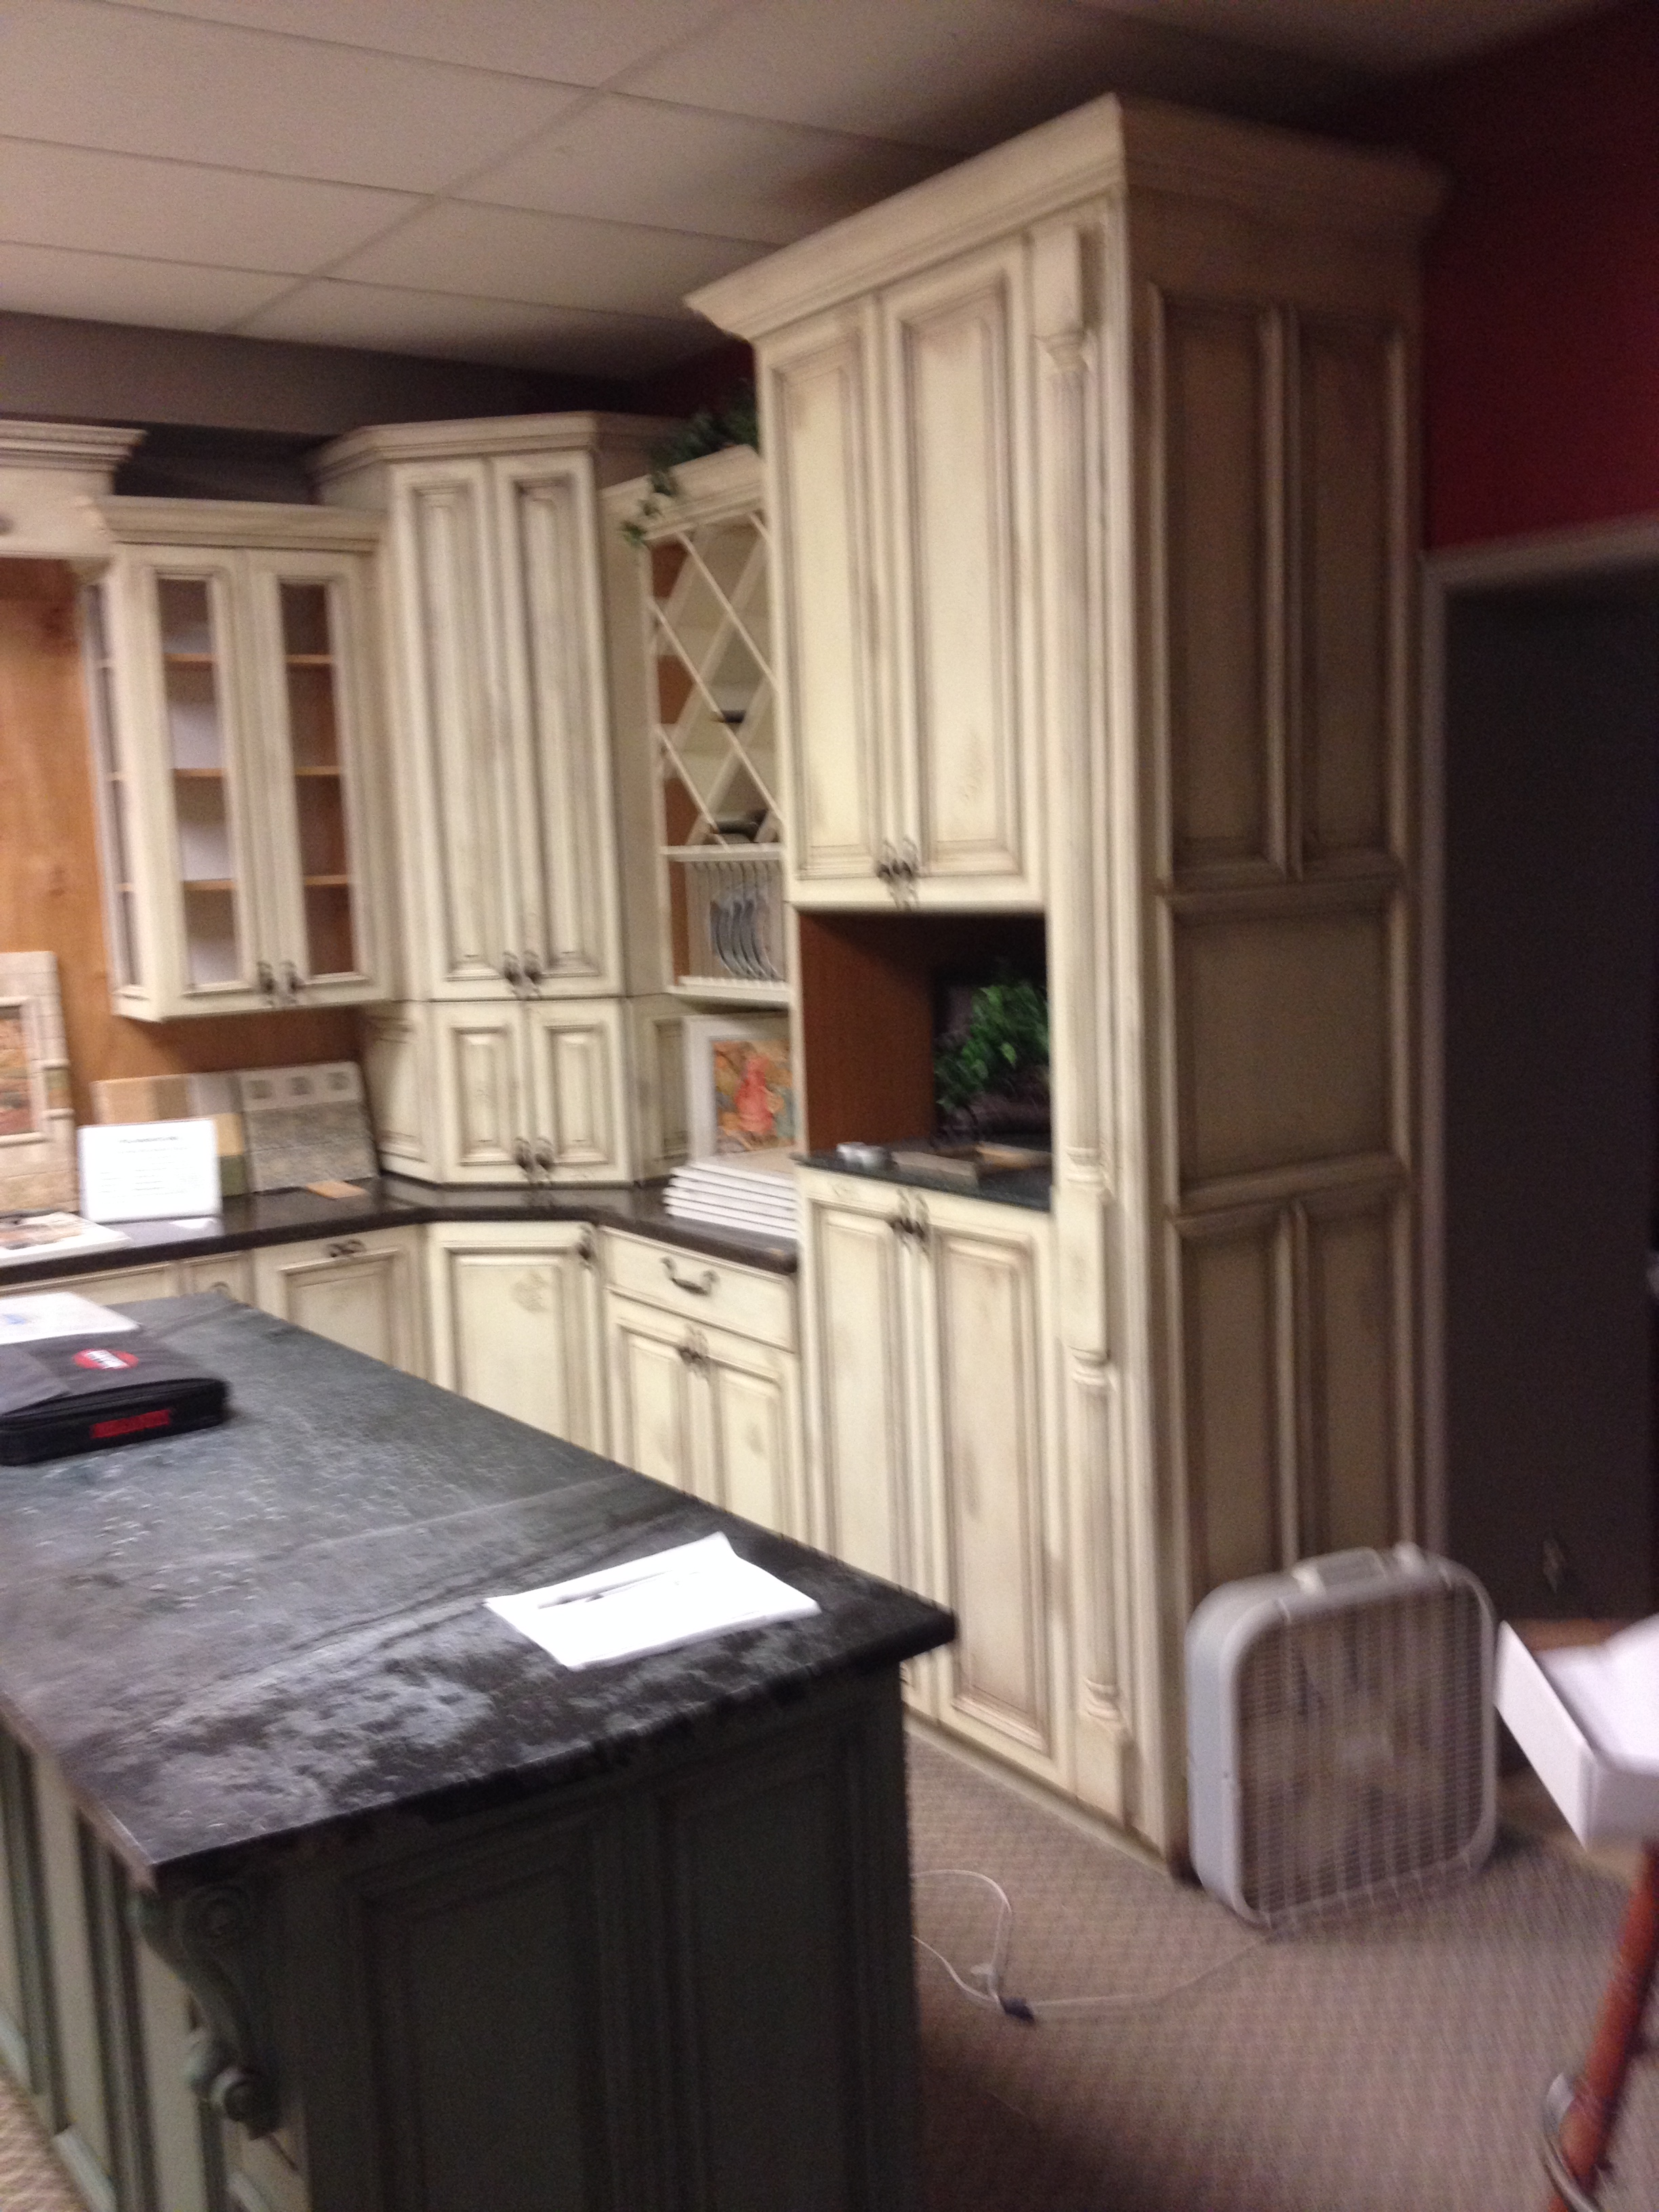 Oklahomau0027s Best Cabinetmaker Building Quality Cabinets And Countertops